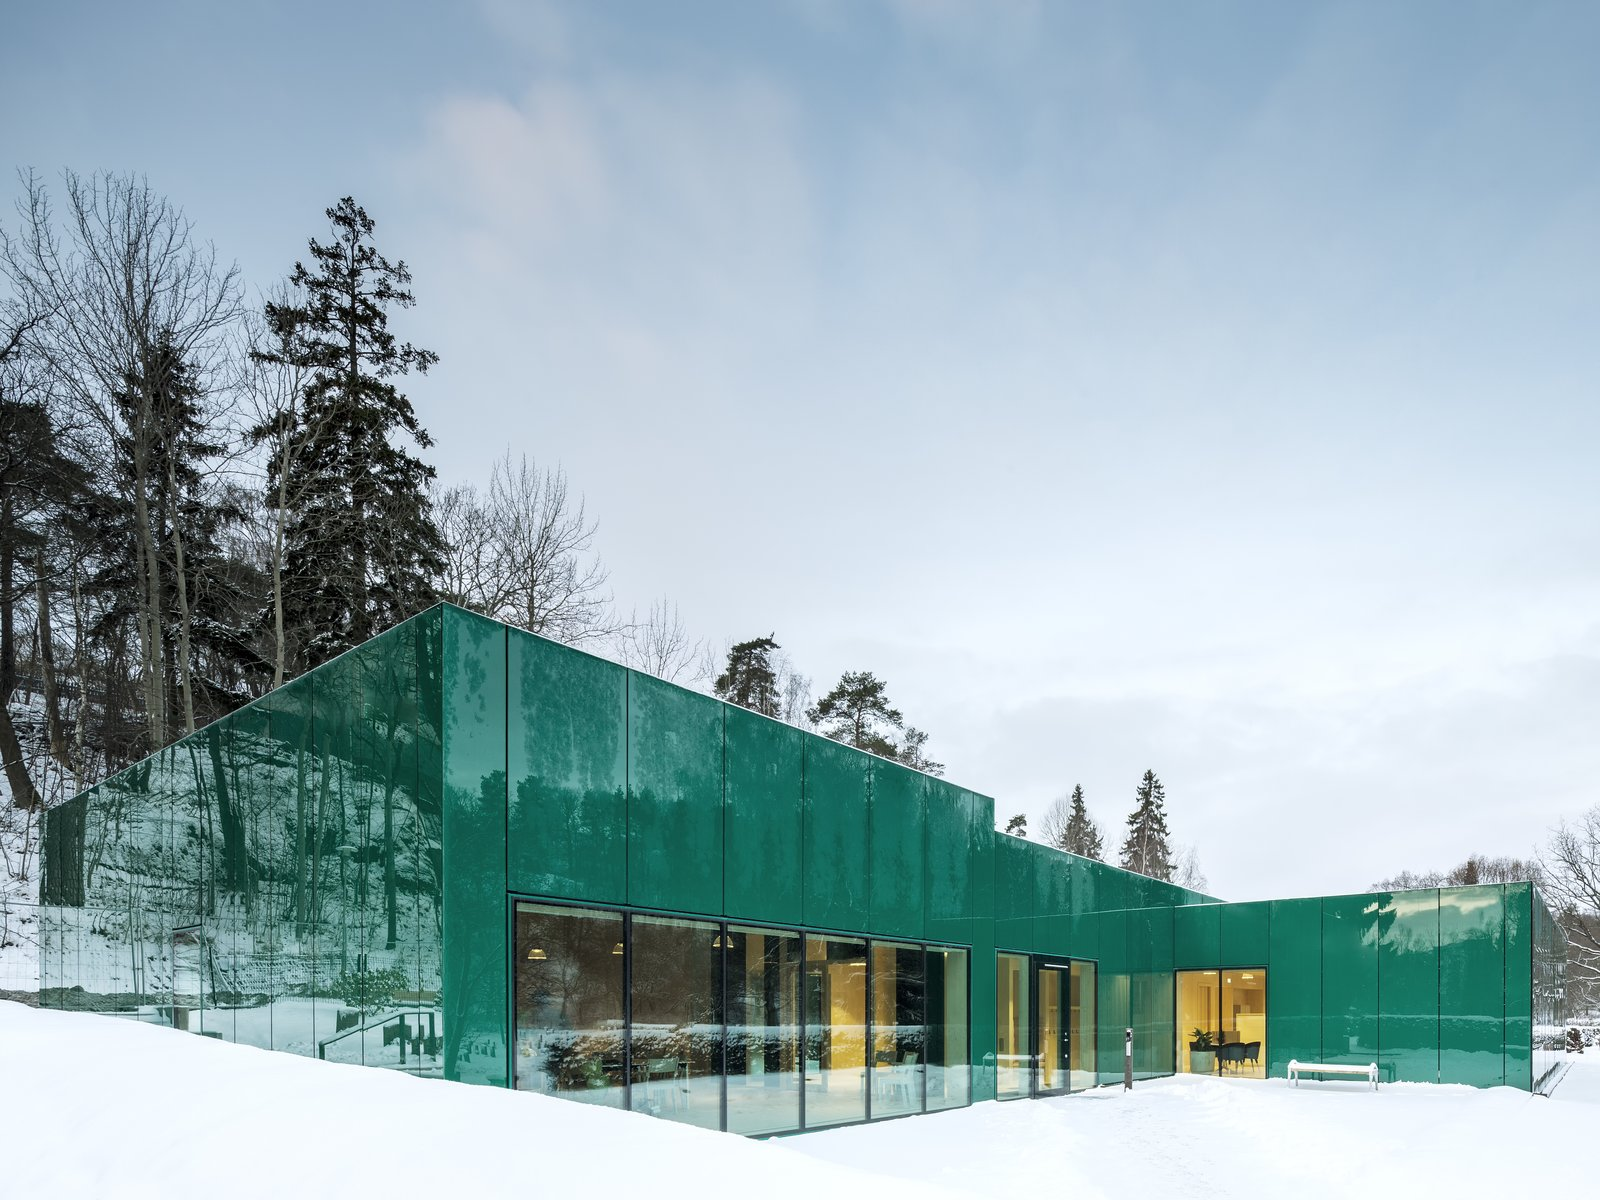 Kgc Together With Architect G Wingårdh Builds A Unique Office In A